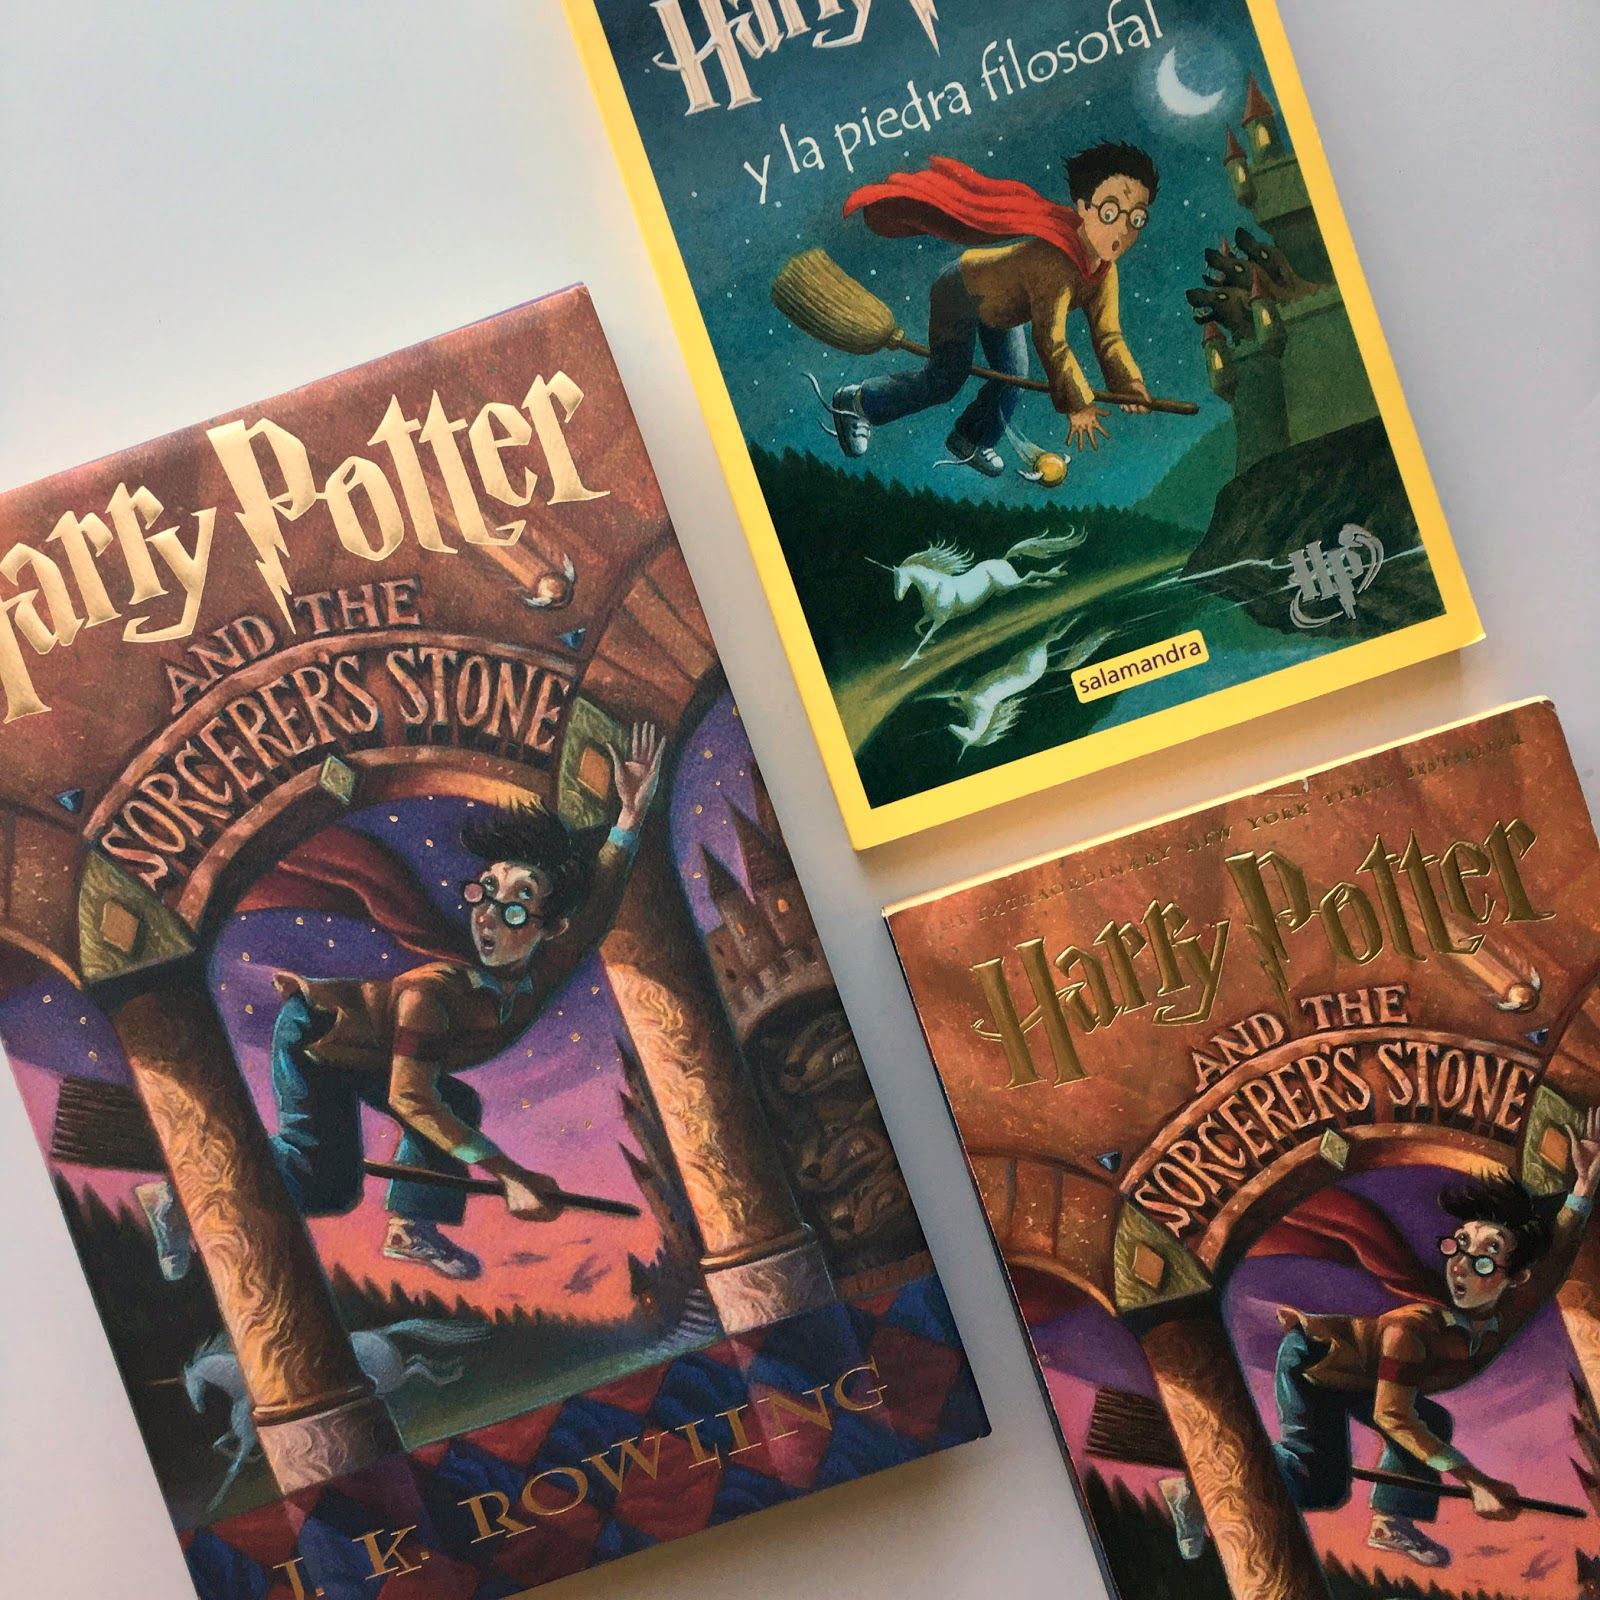 Harry Potter and the Sorcerer's Stone Book 1 (Audiobook) J.K. Rowling Narrated by Jim Dale